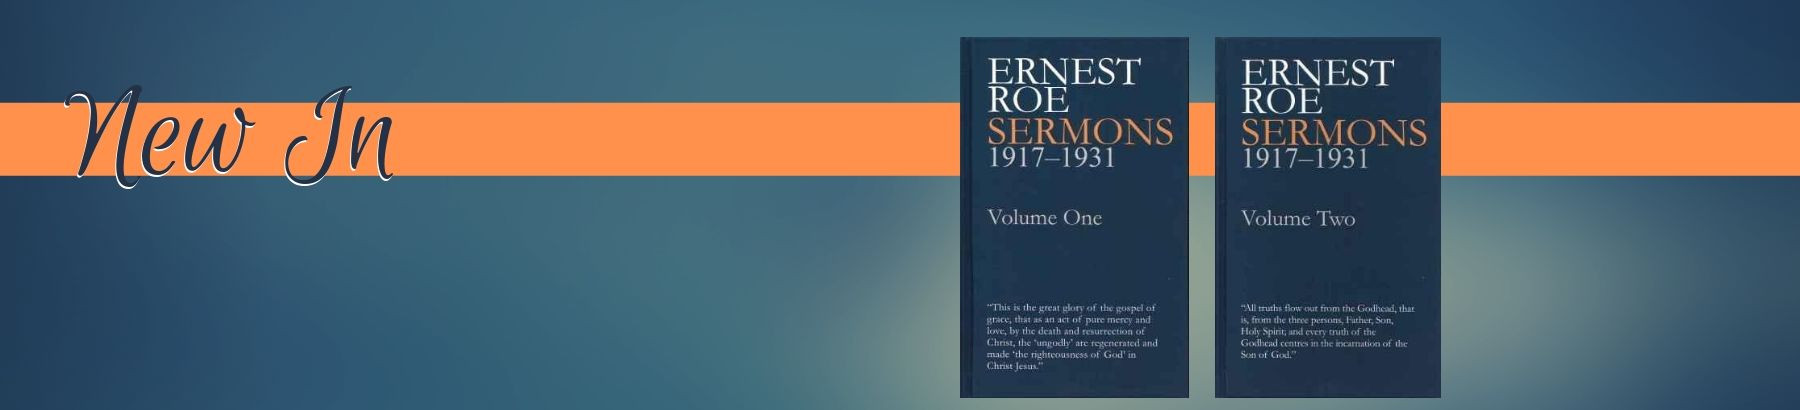 Just arrived! Sermons by Ernest Roe